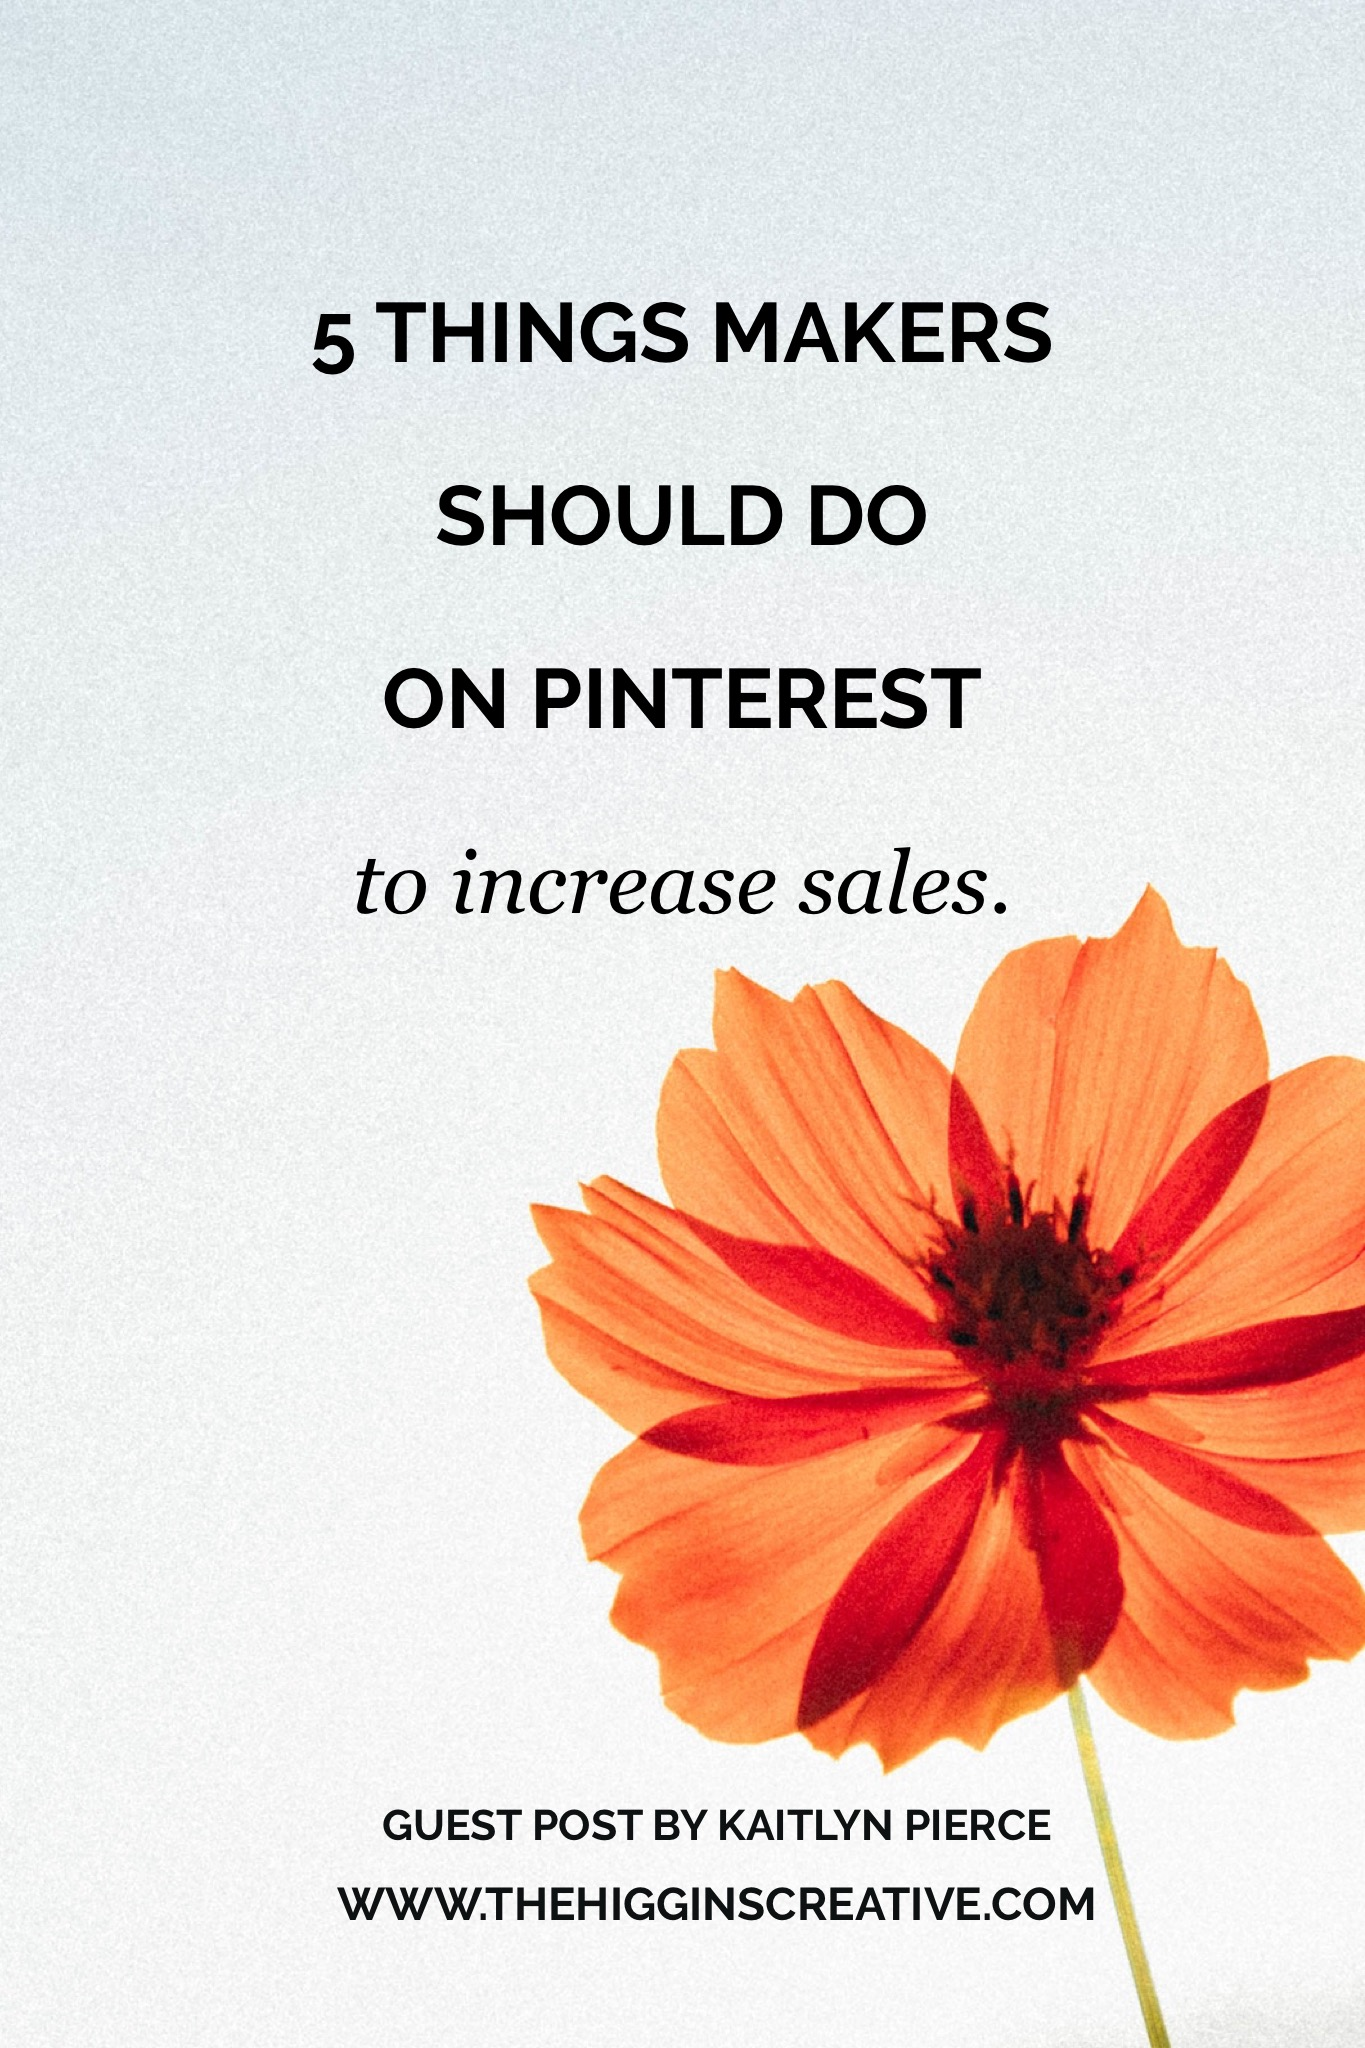 5 things you should do on Pinterest to increase sales. Pinterest is a great social channel to use when selling products and services, here are some tips on how to improve your Pinterest profile for business and increase traffic and sales.